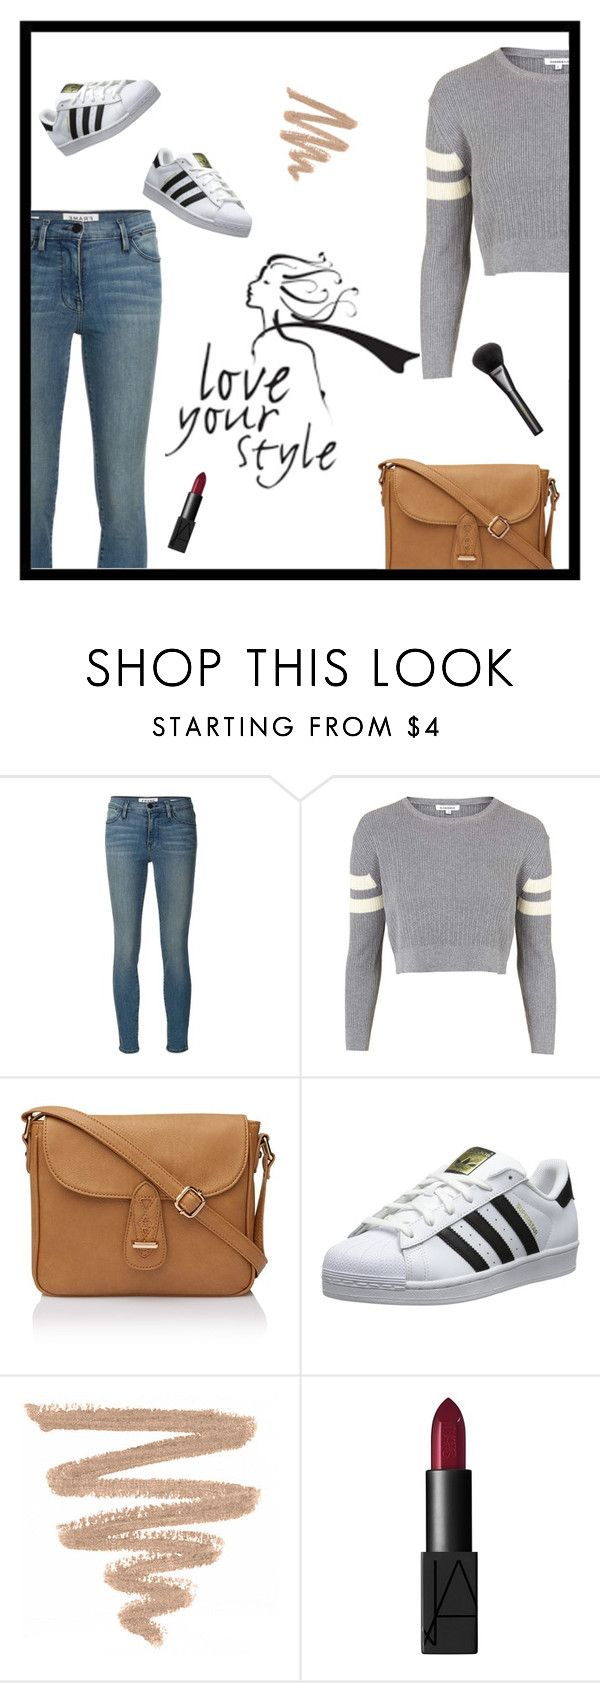 """superstar"" by nitsanvalder ❤ liked on Polyvore featuring Frame Denim, Topshop, adidas Originals, NARS Cosmetics, Gucci and superstar"